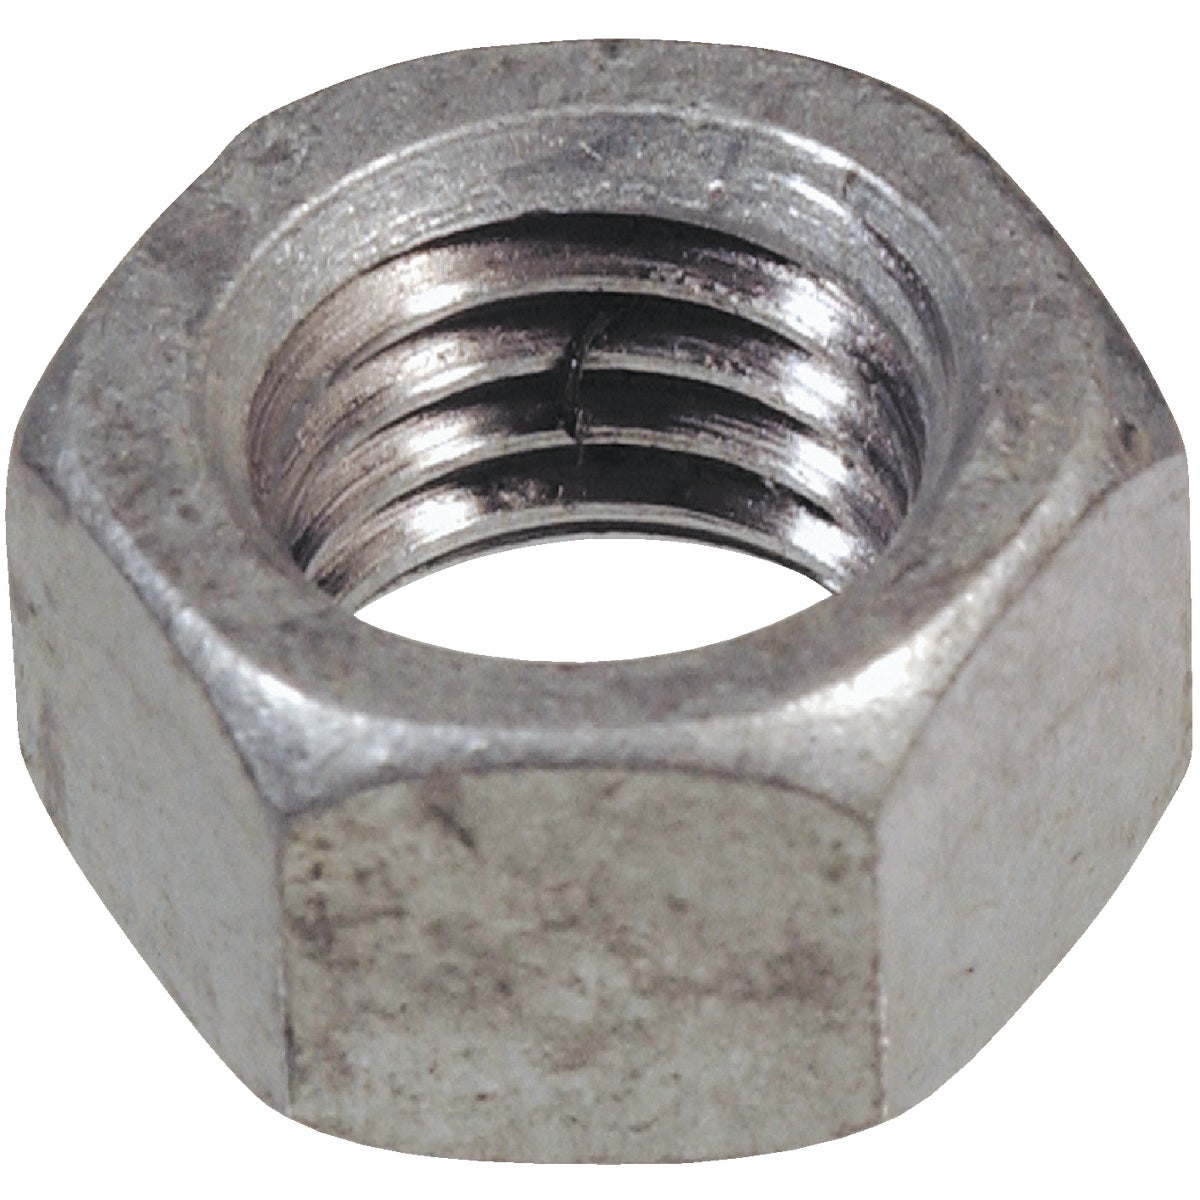 100PC 3/8-16 HEX NUT - 810509 by Hillman Fastener